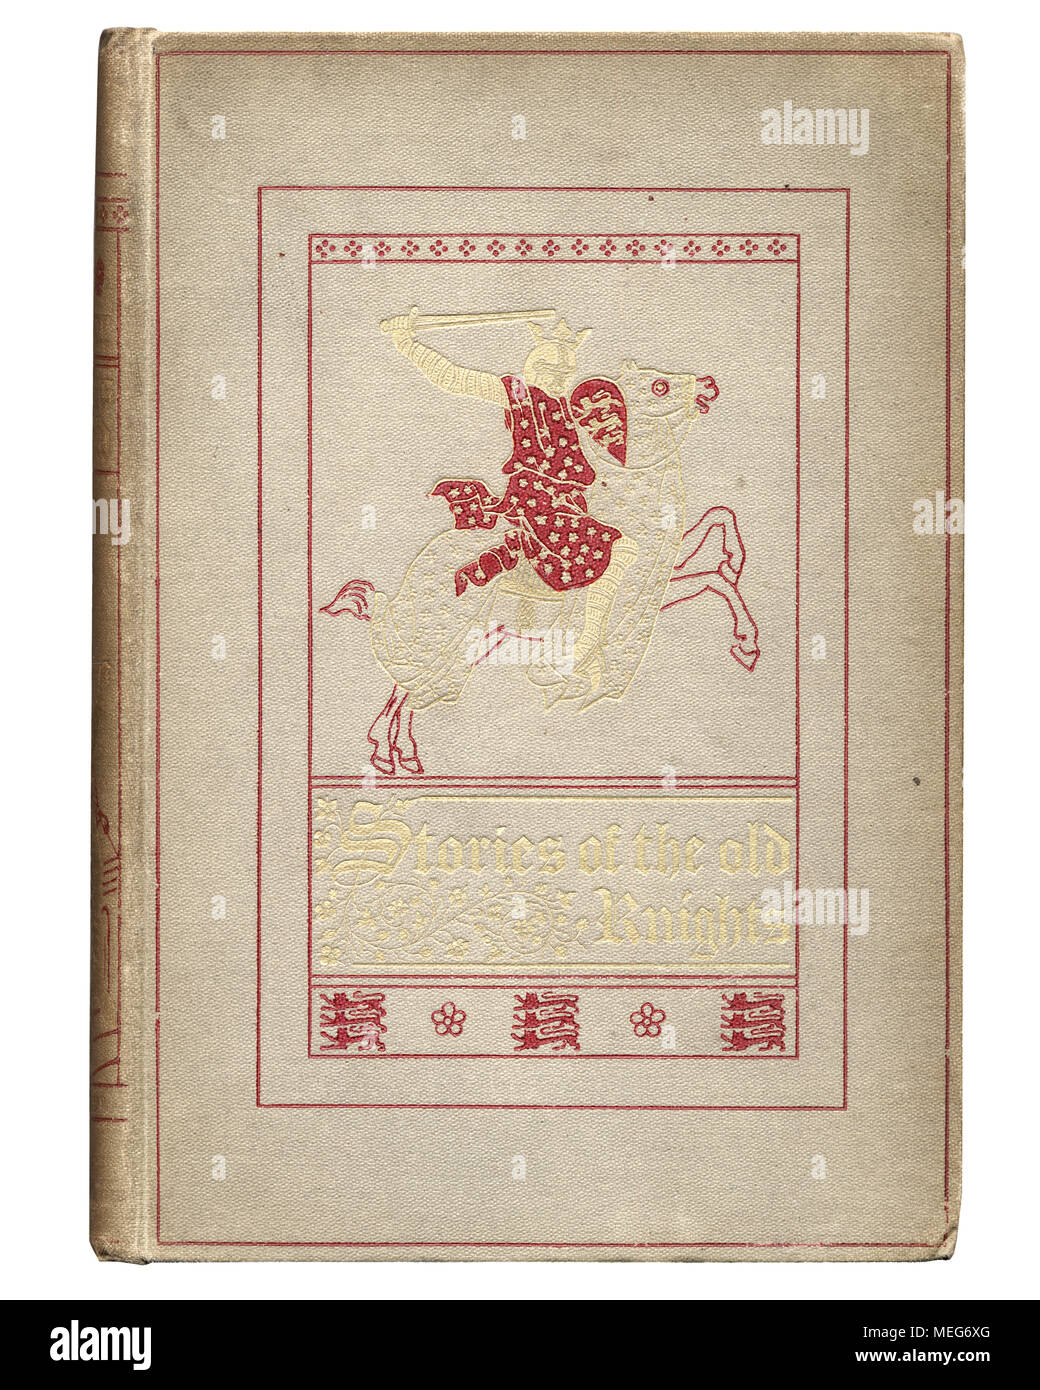 Antique book cover, Stories of the old knights - Stock Image